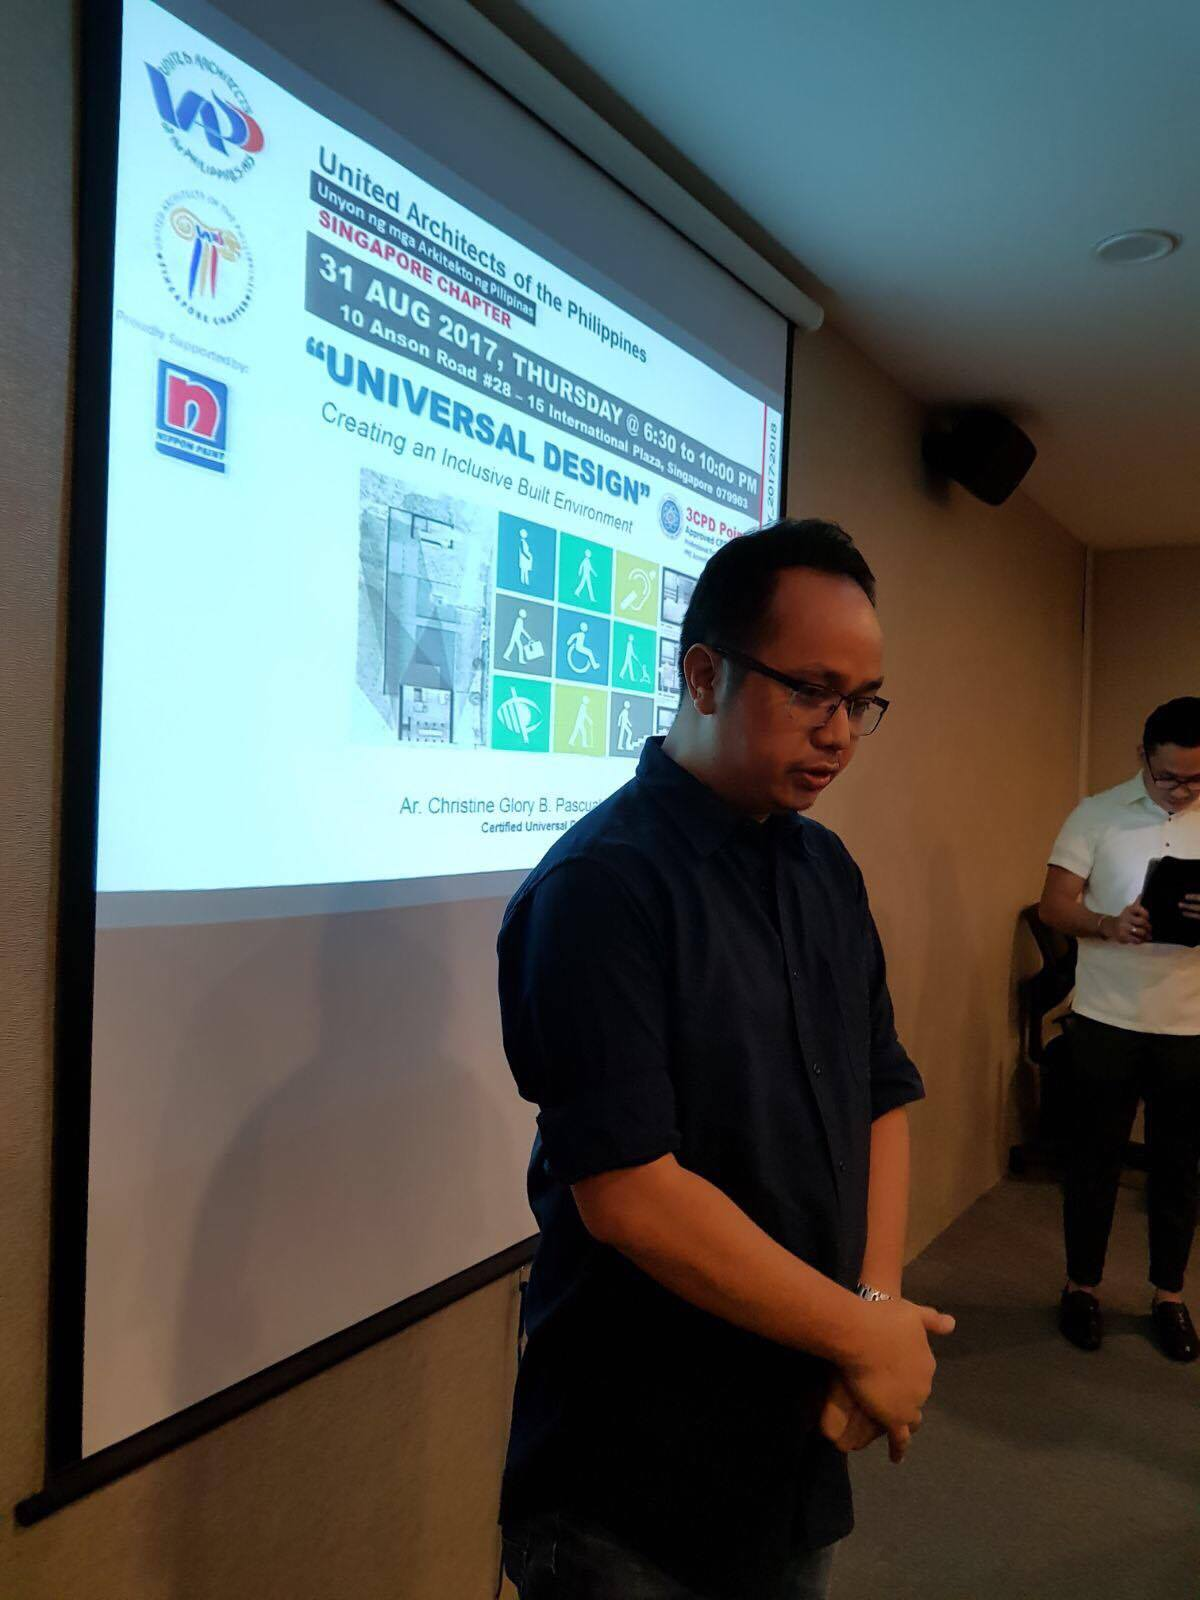 09.19.17 | UAP Singapore Chapter's Universal Design - Creating an Inclusive Built Environment